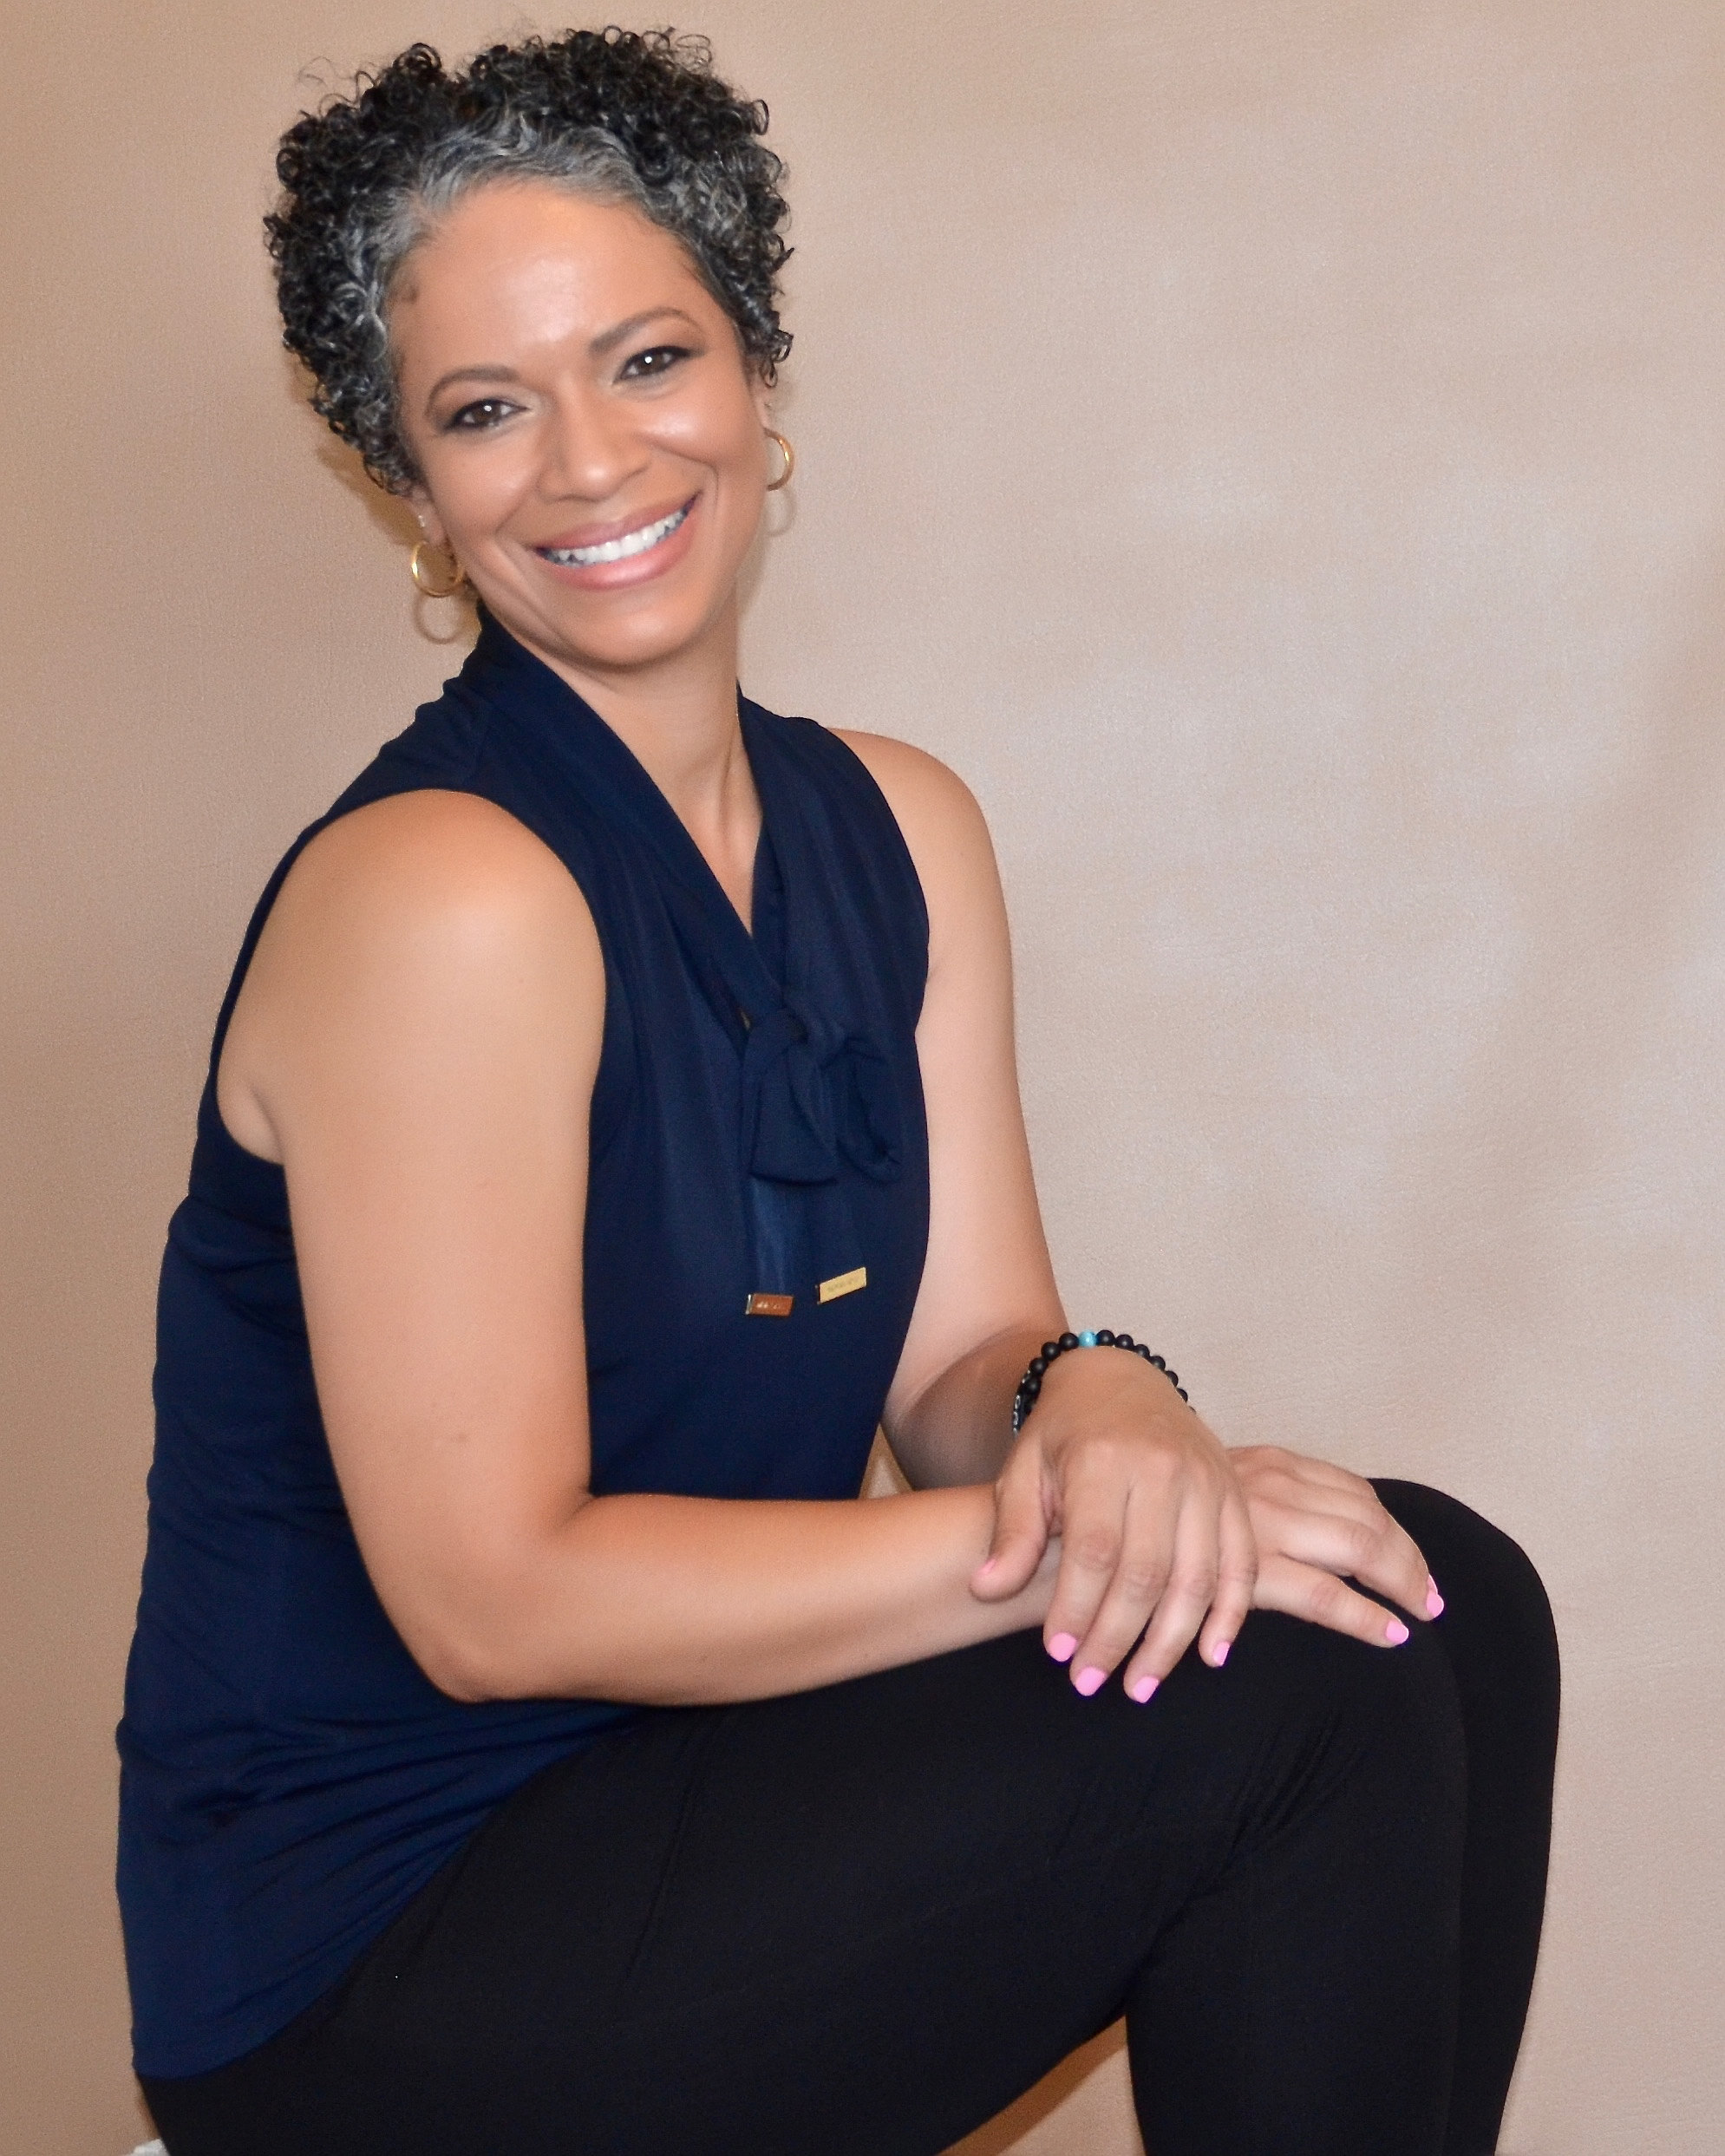 Angela Marshall will be judging our 2021 Writing Mentorship Award